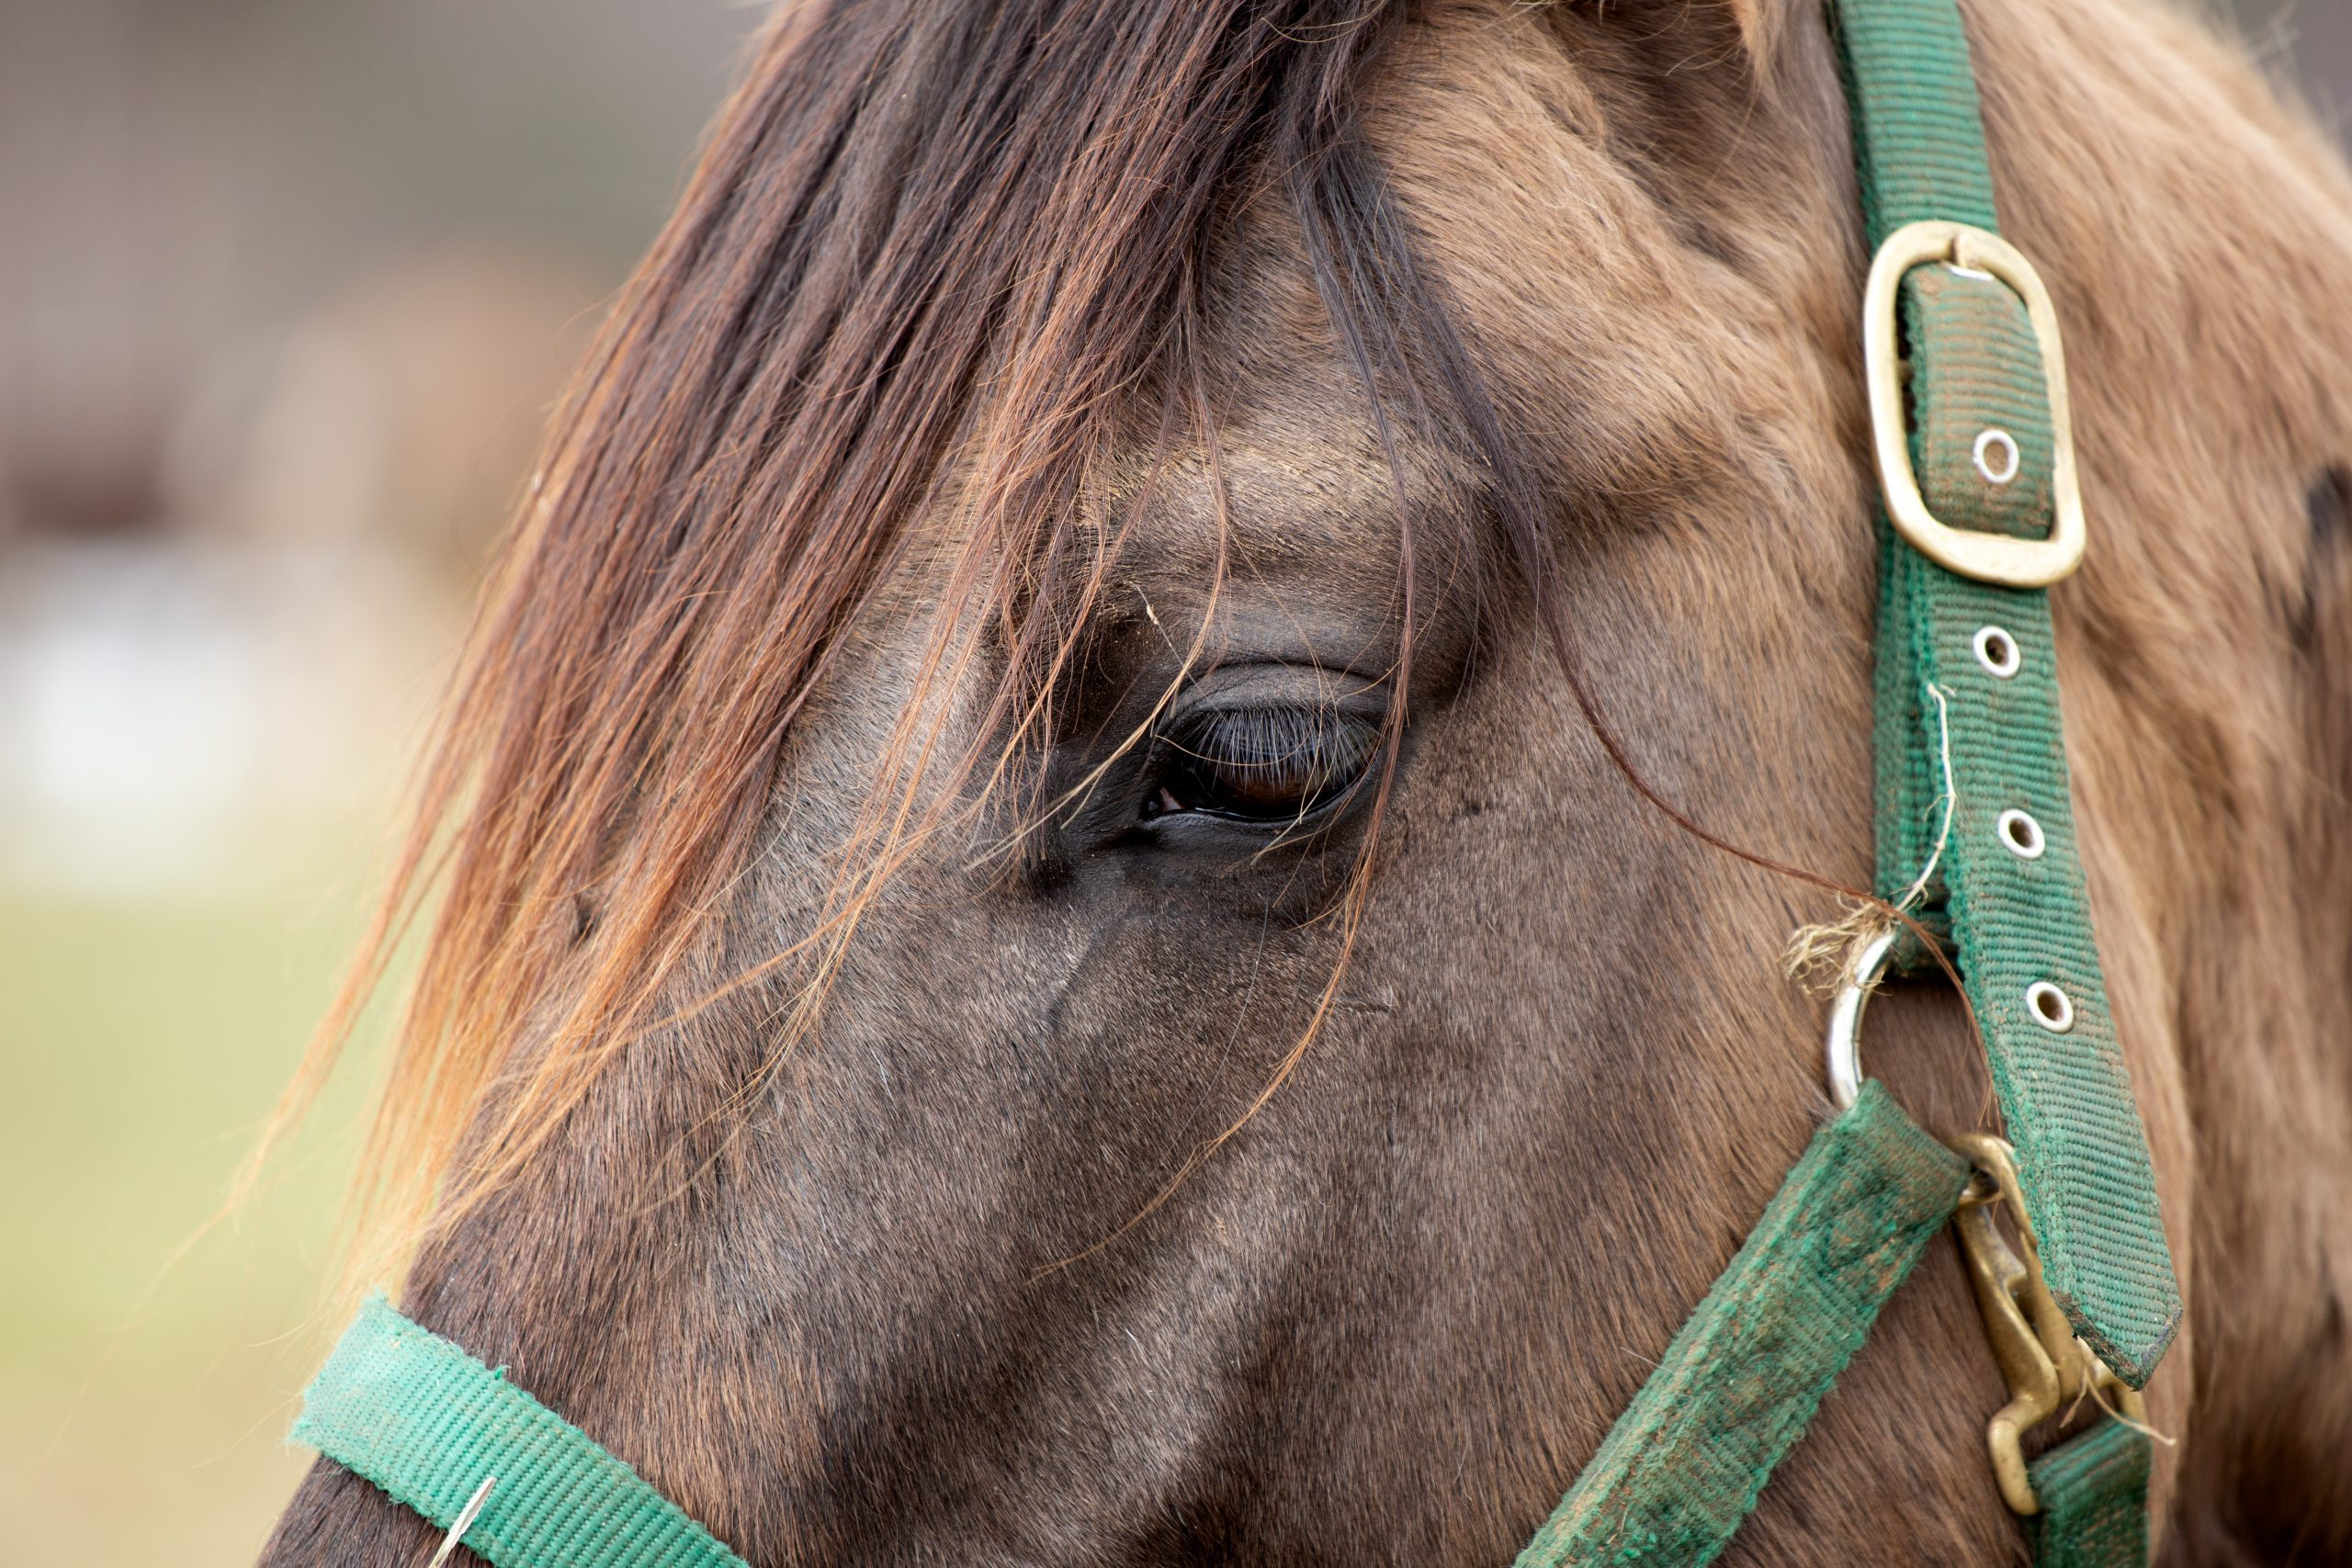 Ivermectin is good for horses, bad for COVID-19 patients.